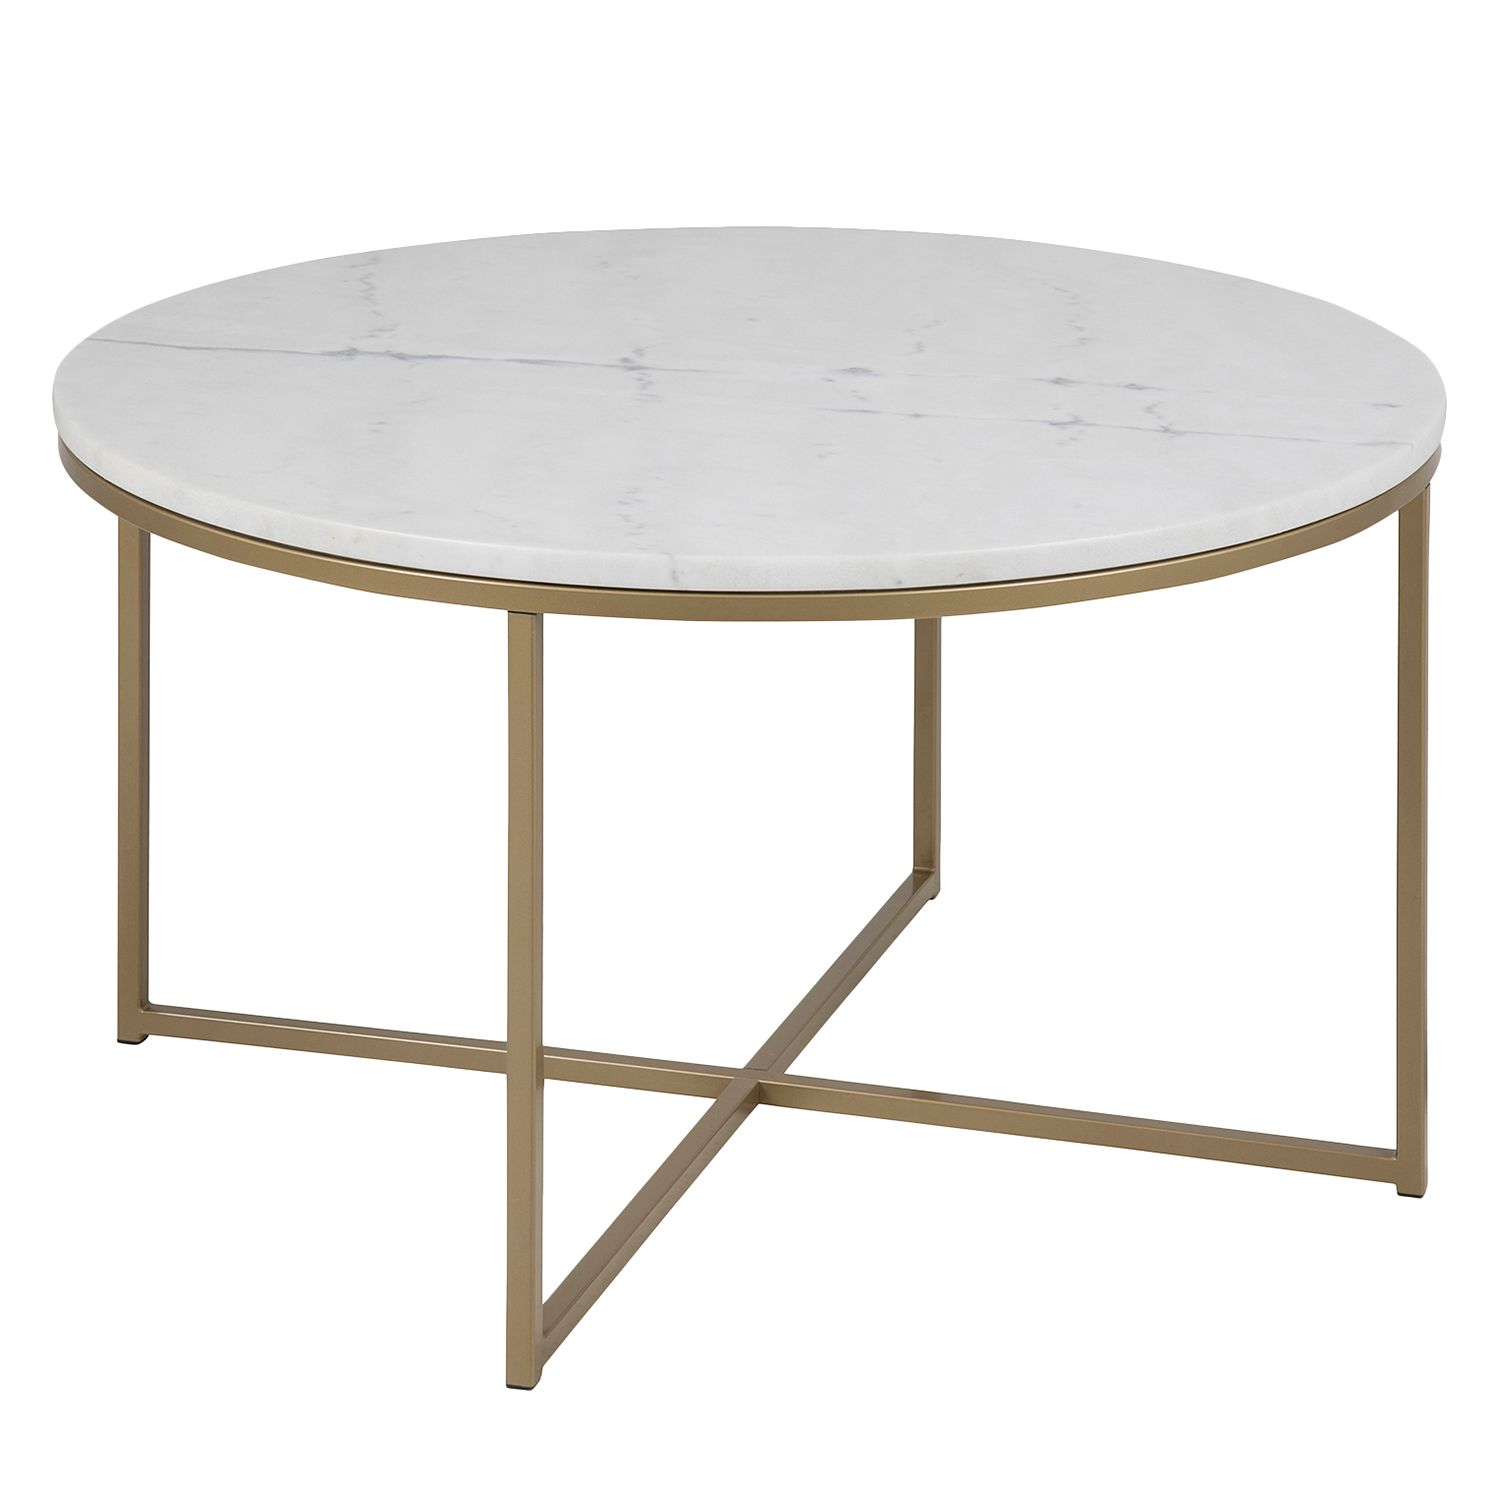 Table basse Mooka